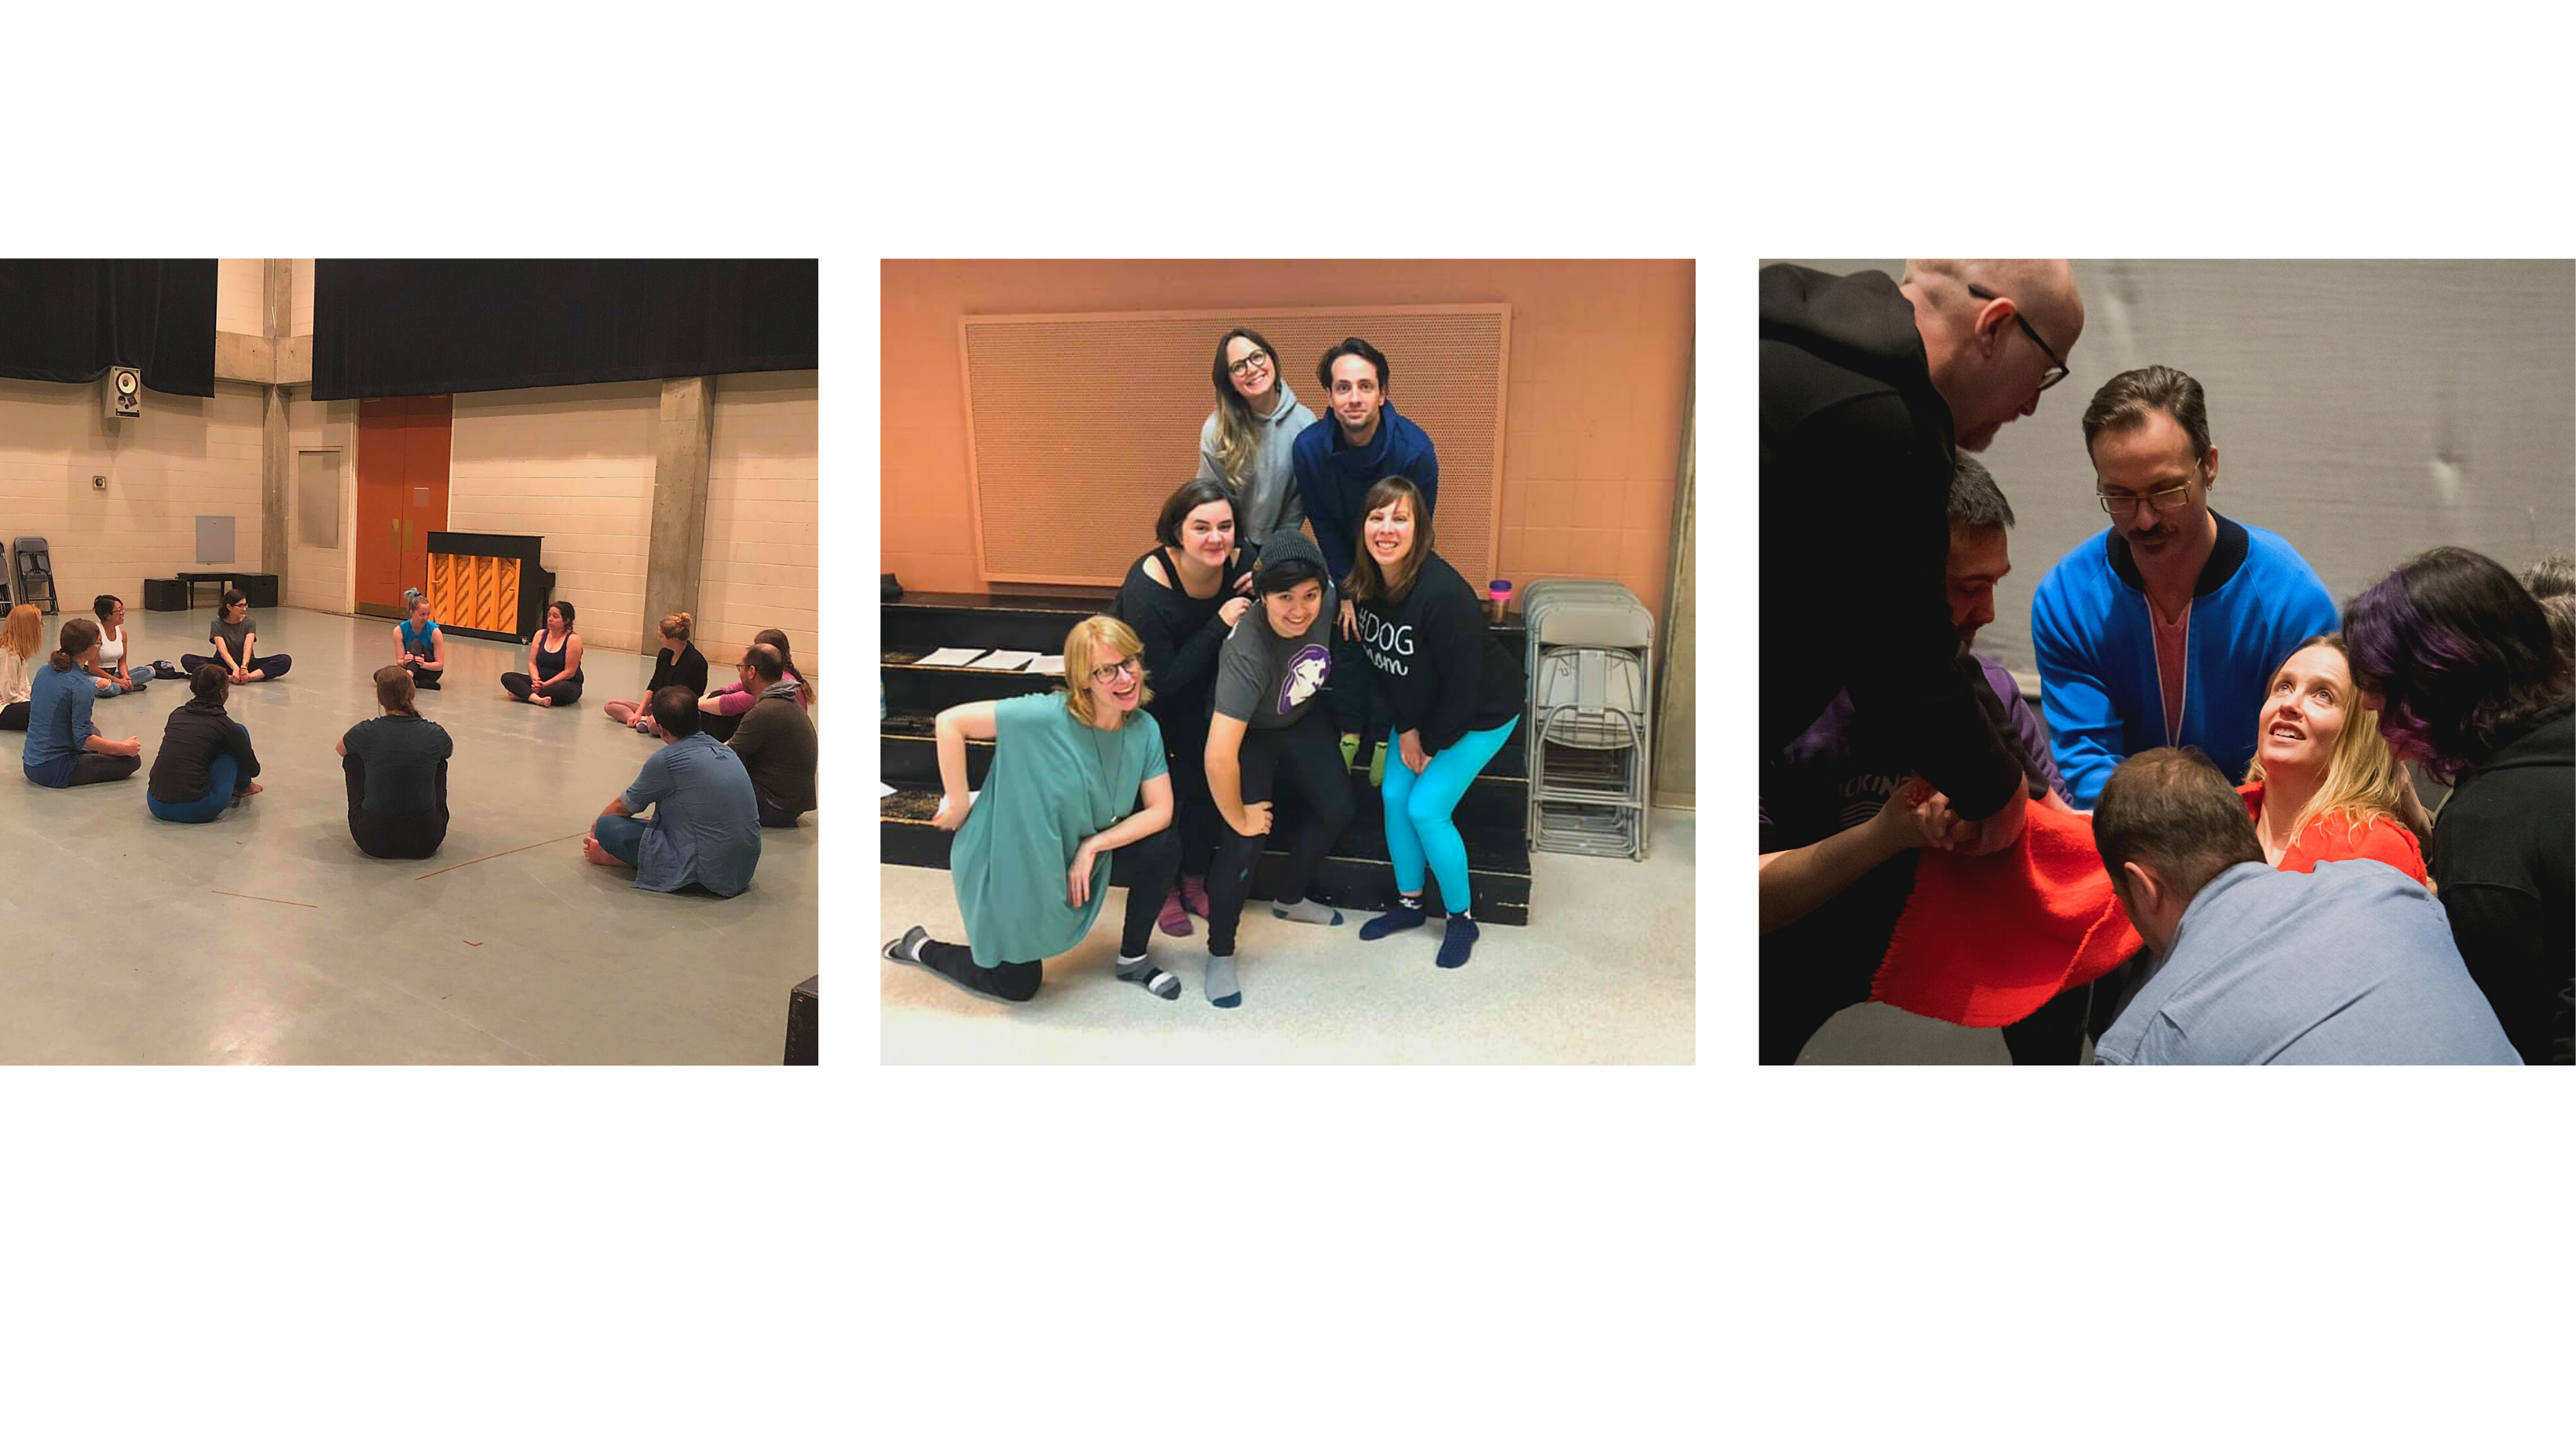 Three Pictures, in different rehearsal space, smiling groups of people. The first is a groupd of people sitting in a circle on floor. A smiling group of people posing for a pictures. A woman looking up being supported by a group of people.